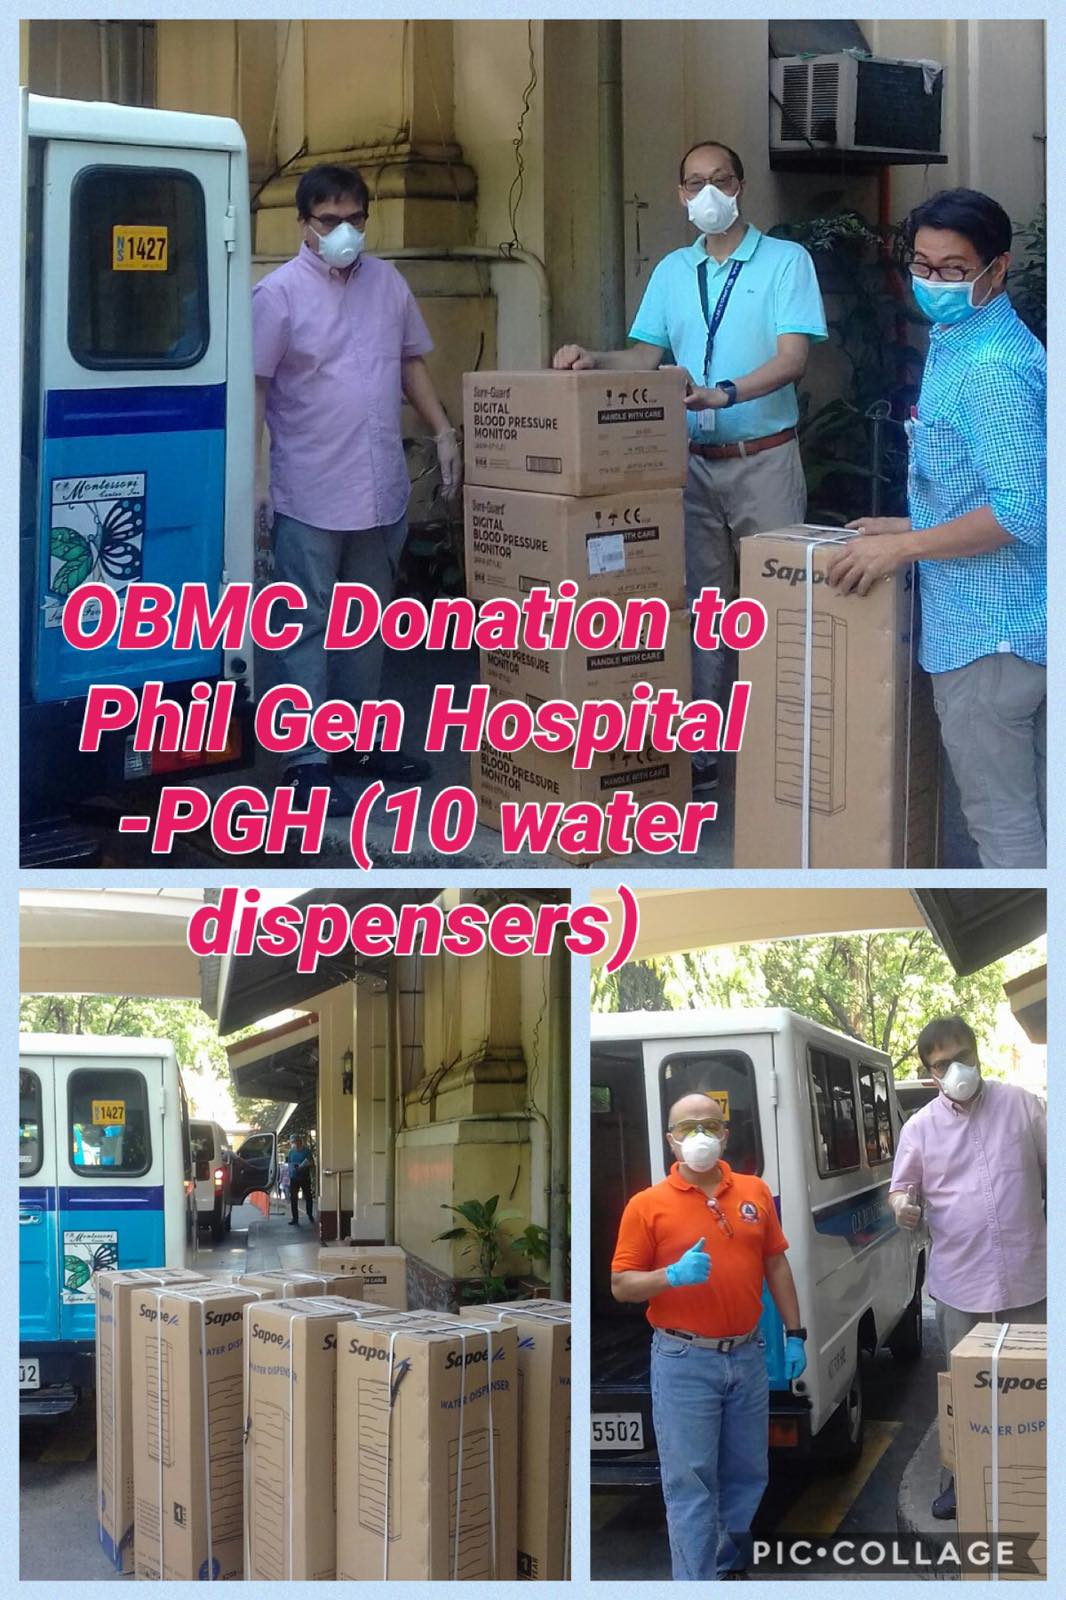 Operation Brotherhood donates to Philippine General Hospital